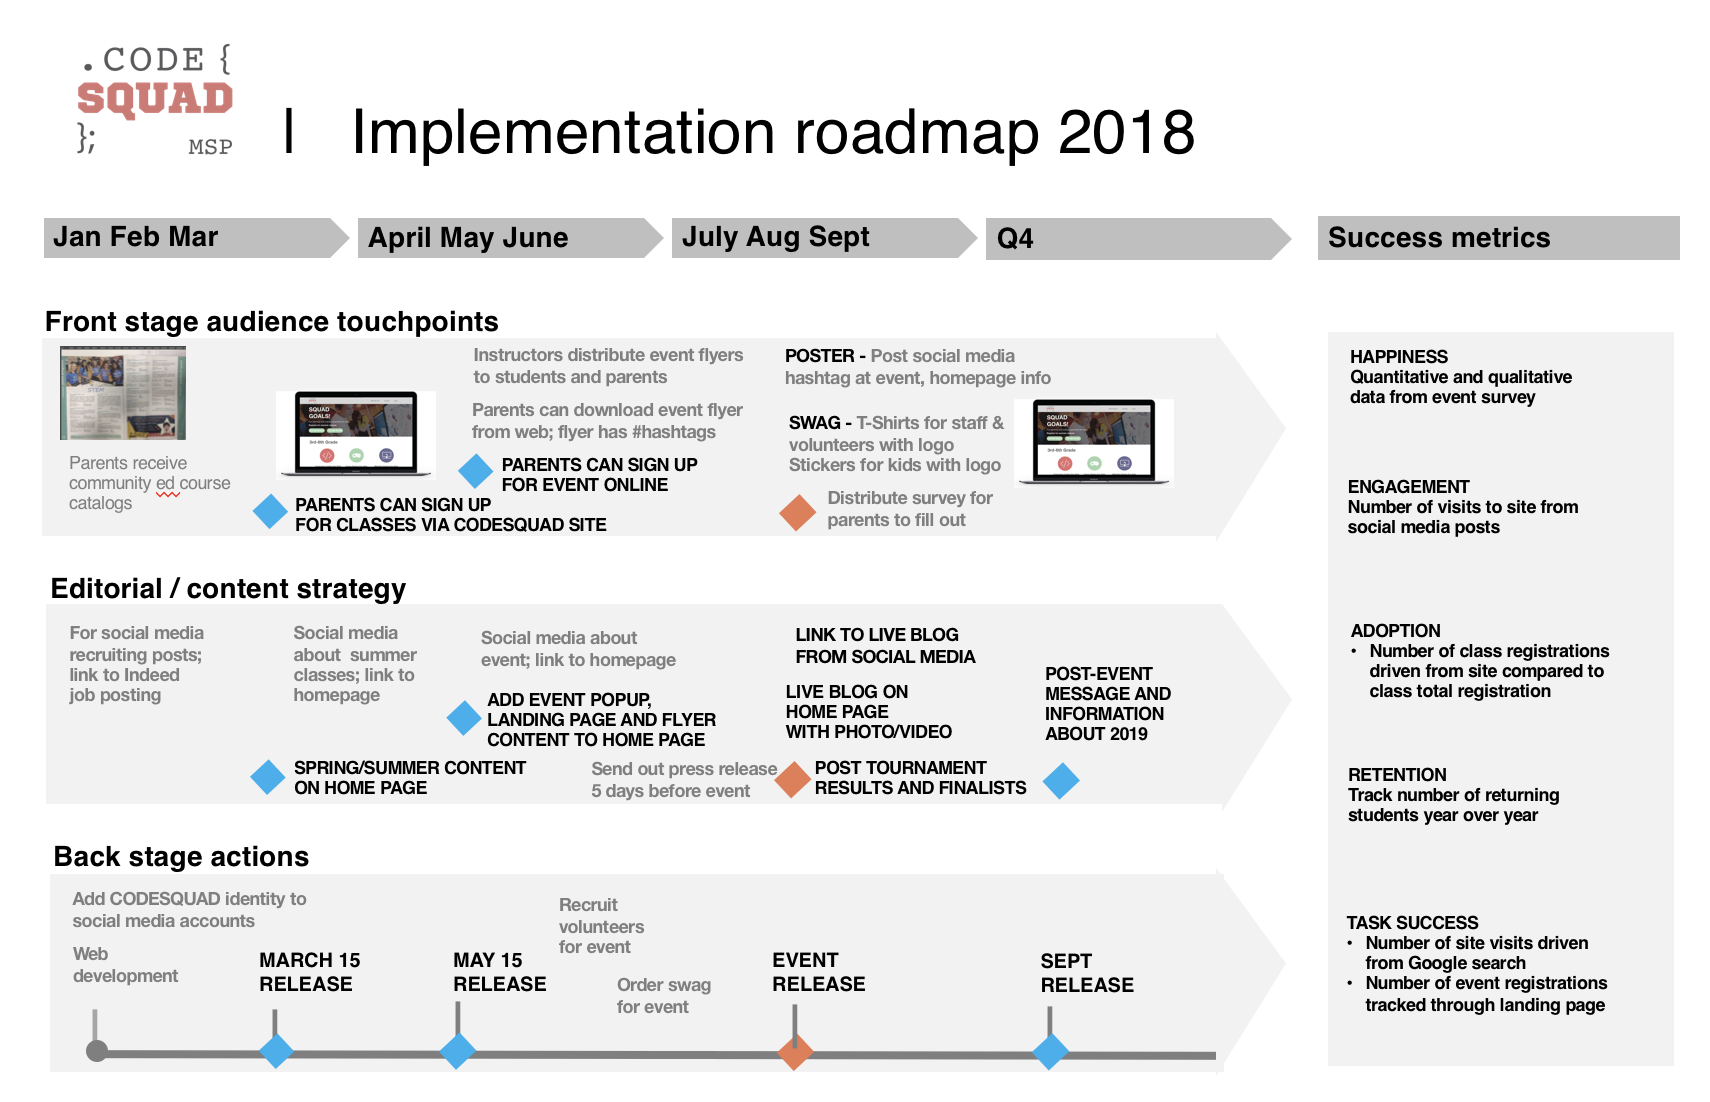 Code squad implementation roadmap.png